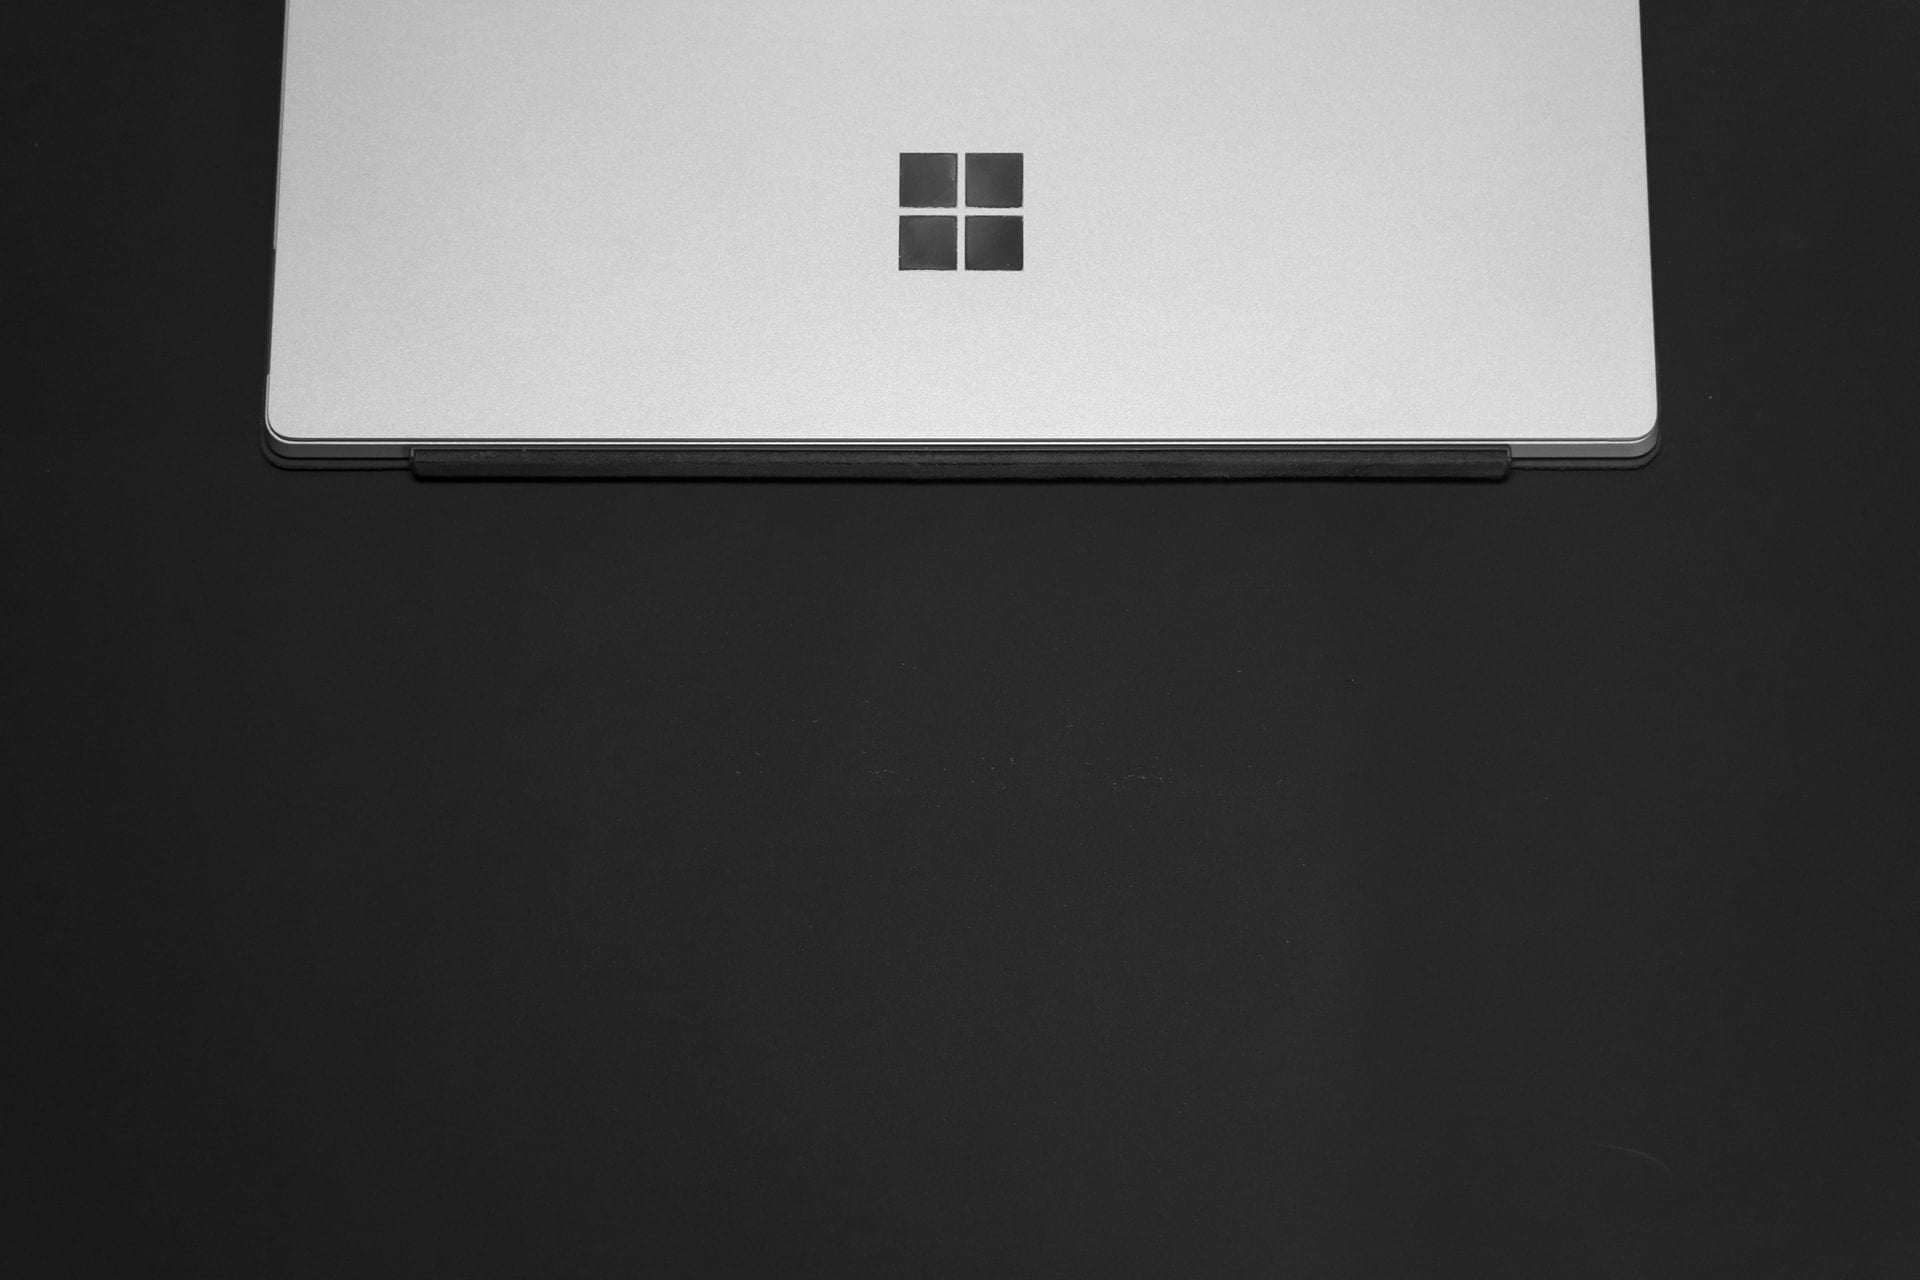 Microsoft Surface Laptop Windows 10